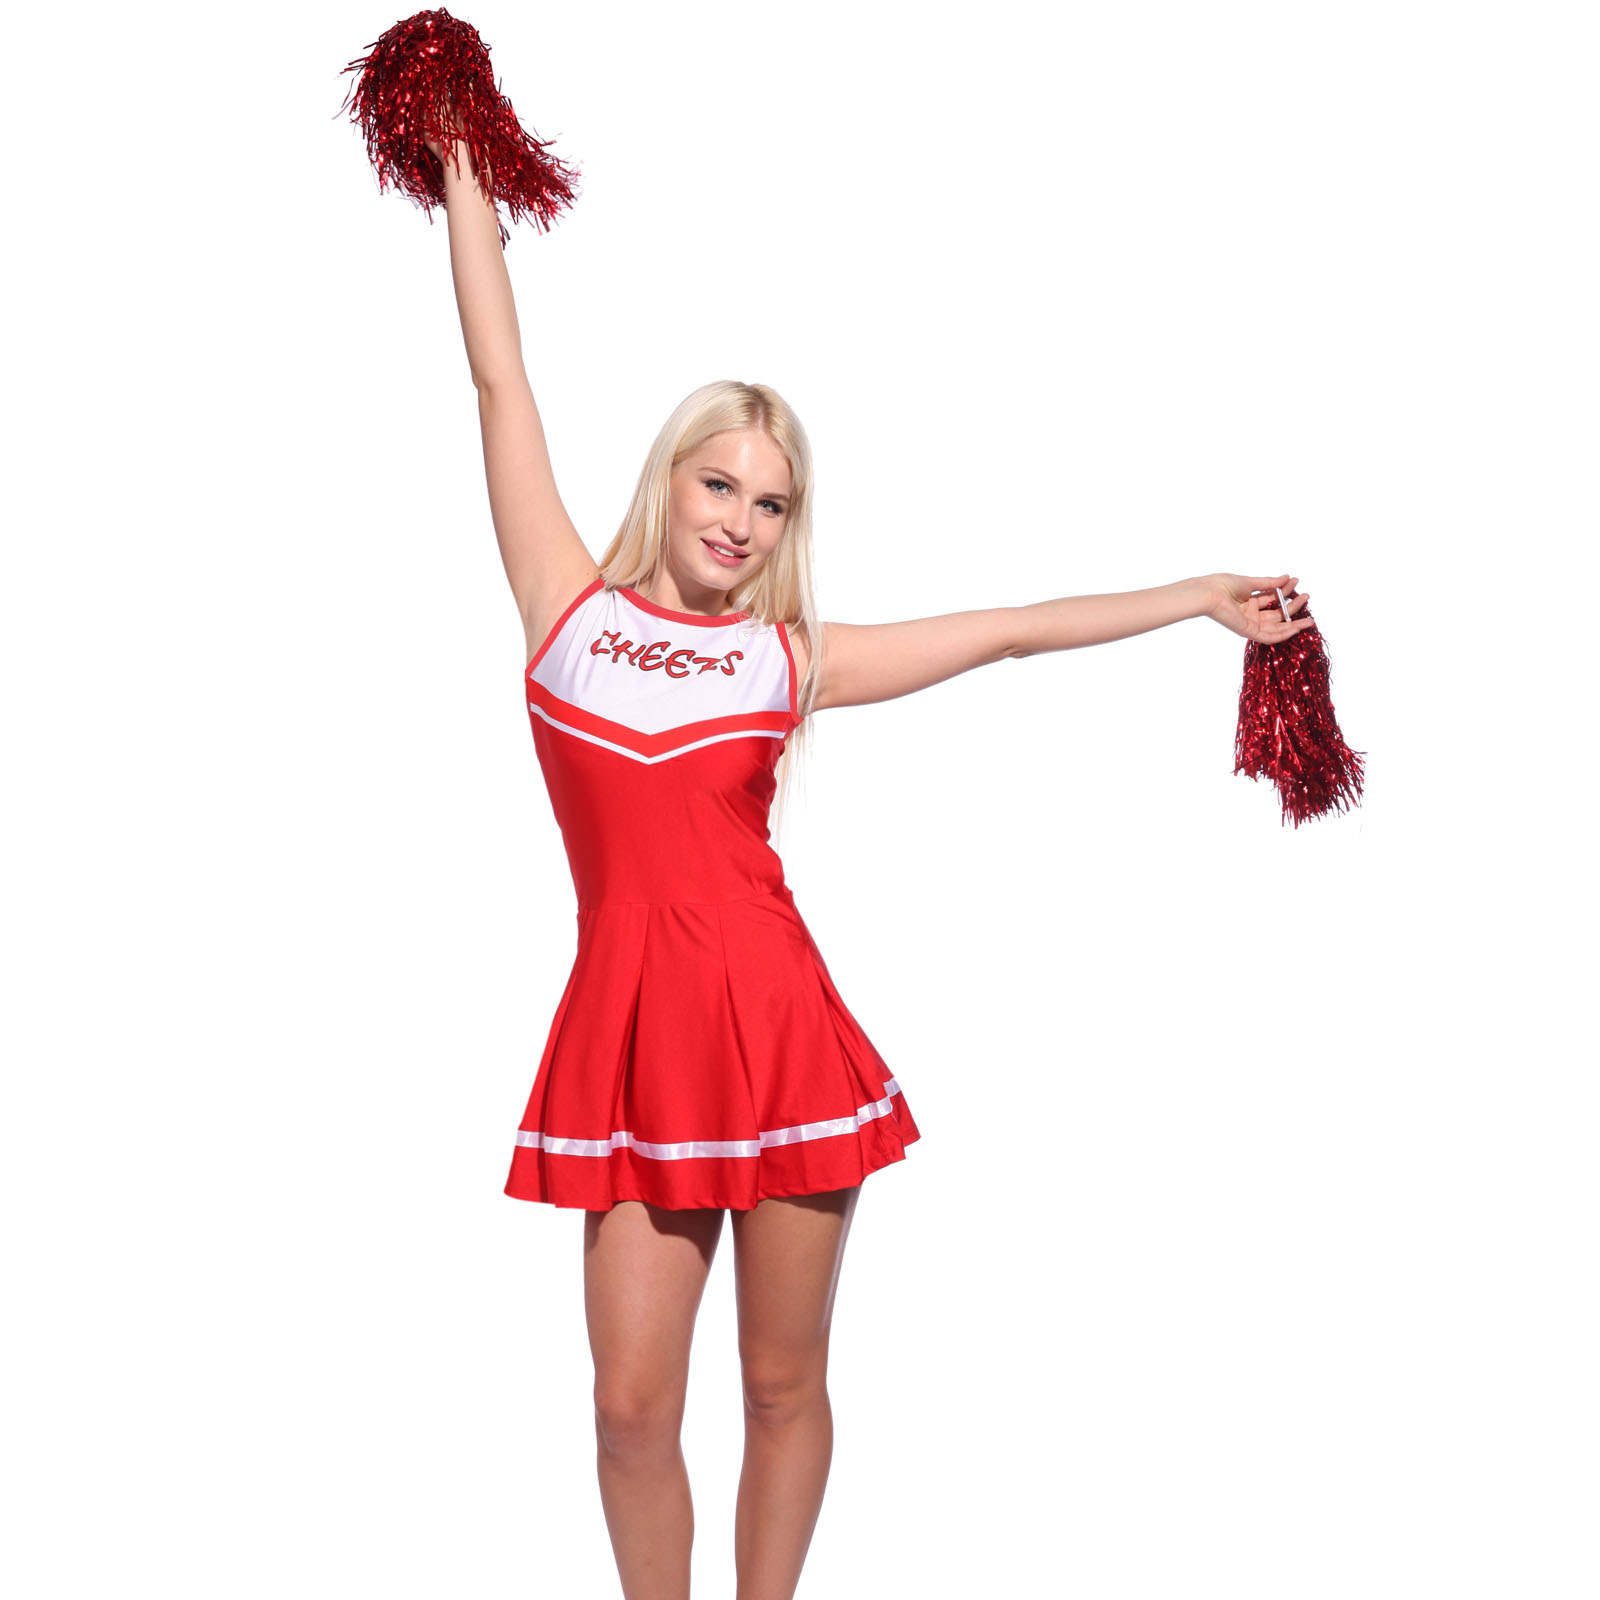 Details about Ladies High School Girl Glee Cheerleader Outfit Fancy Dress  Uniform w  Pompoms 773c58f86